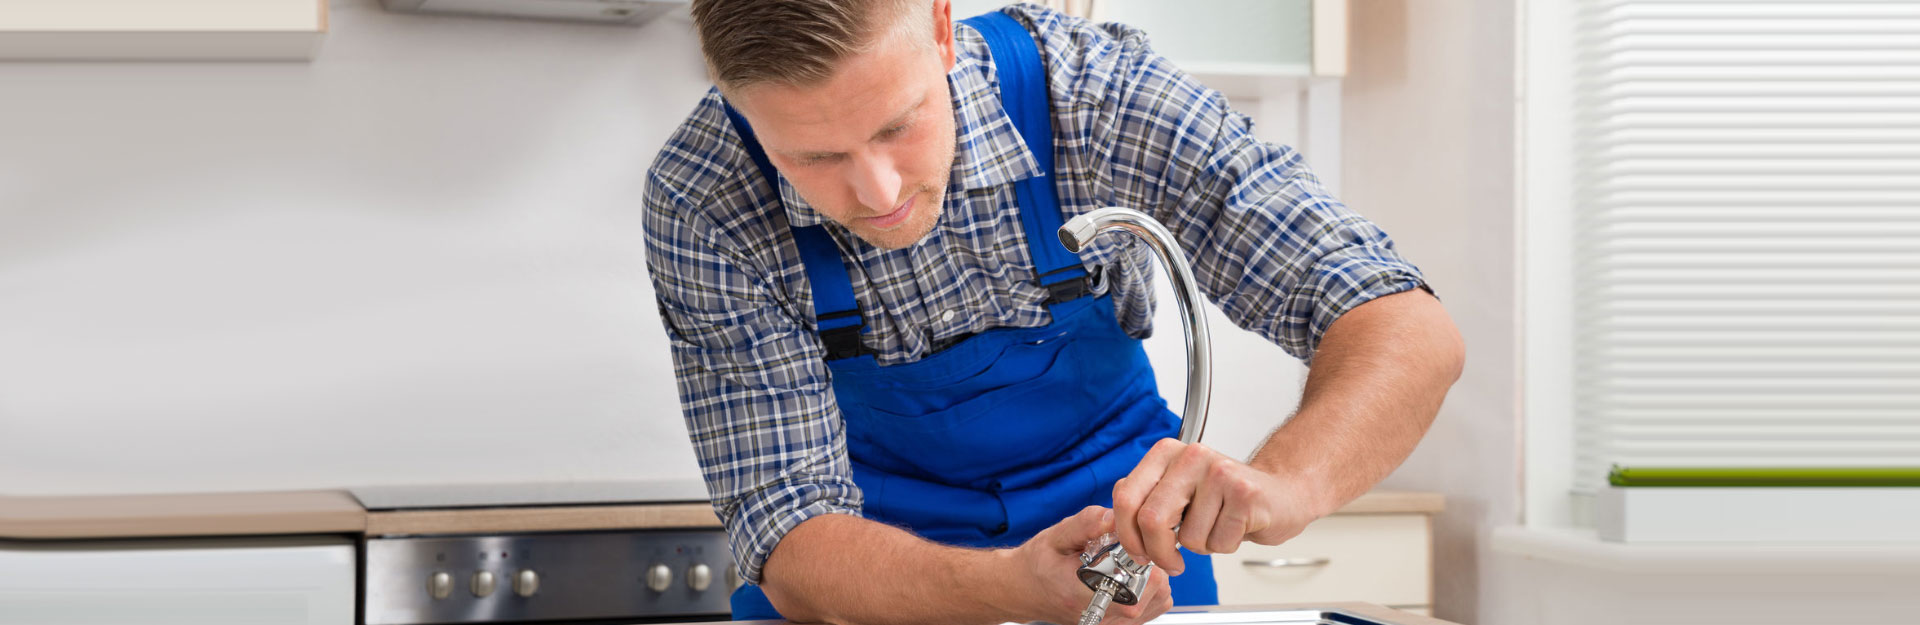 Providing plumbing services since 1987